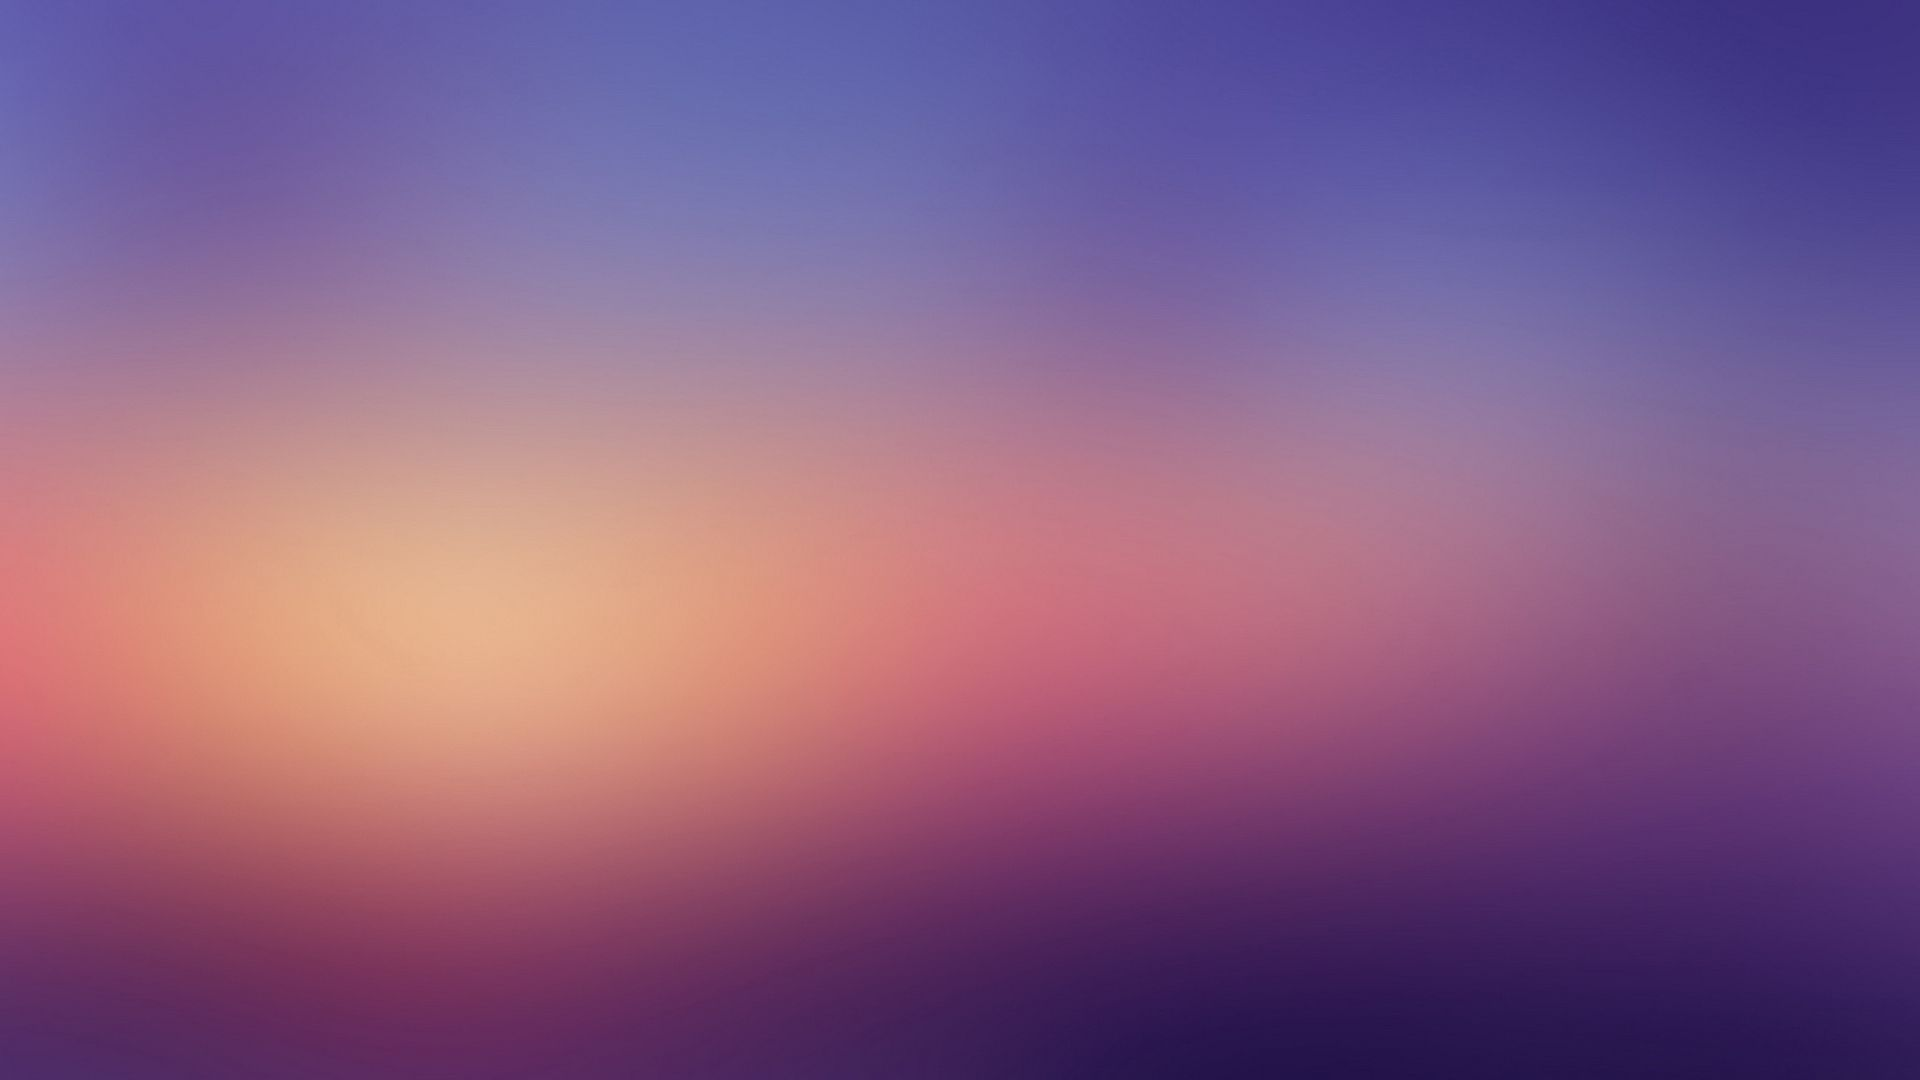 gradient wallpaper #4